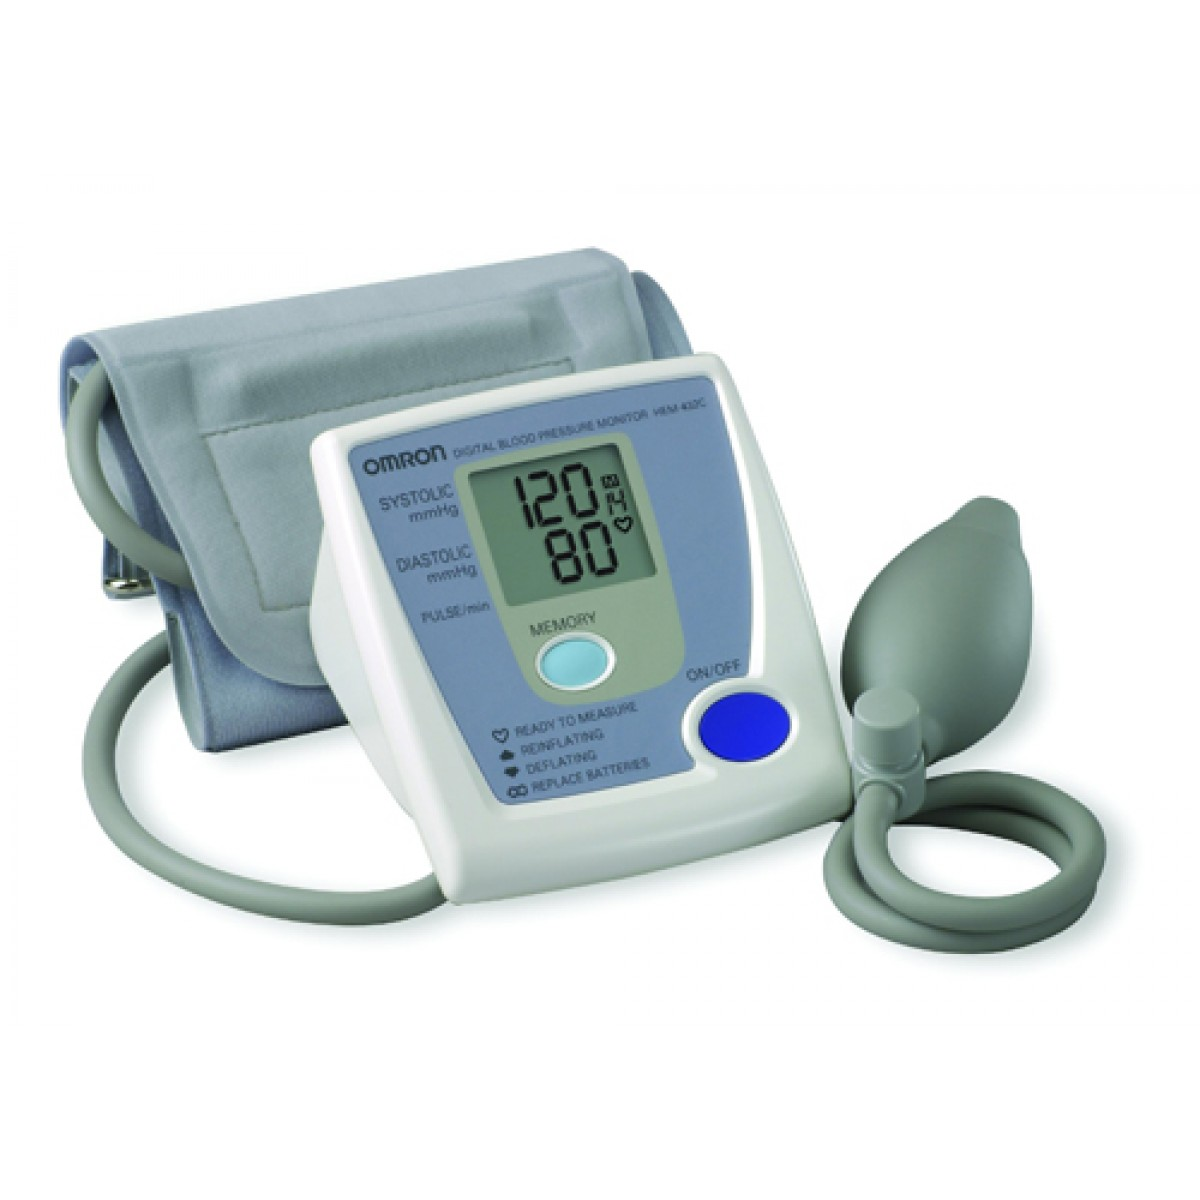 Omron Digital Blood Pressure Monitor ON SALE with Unbeatable Prices